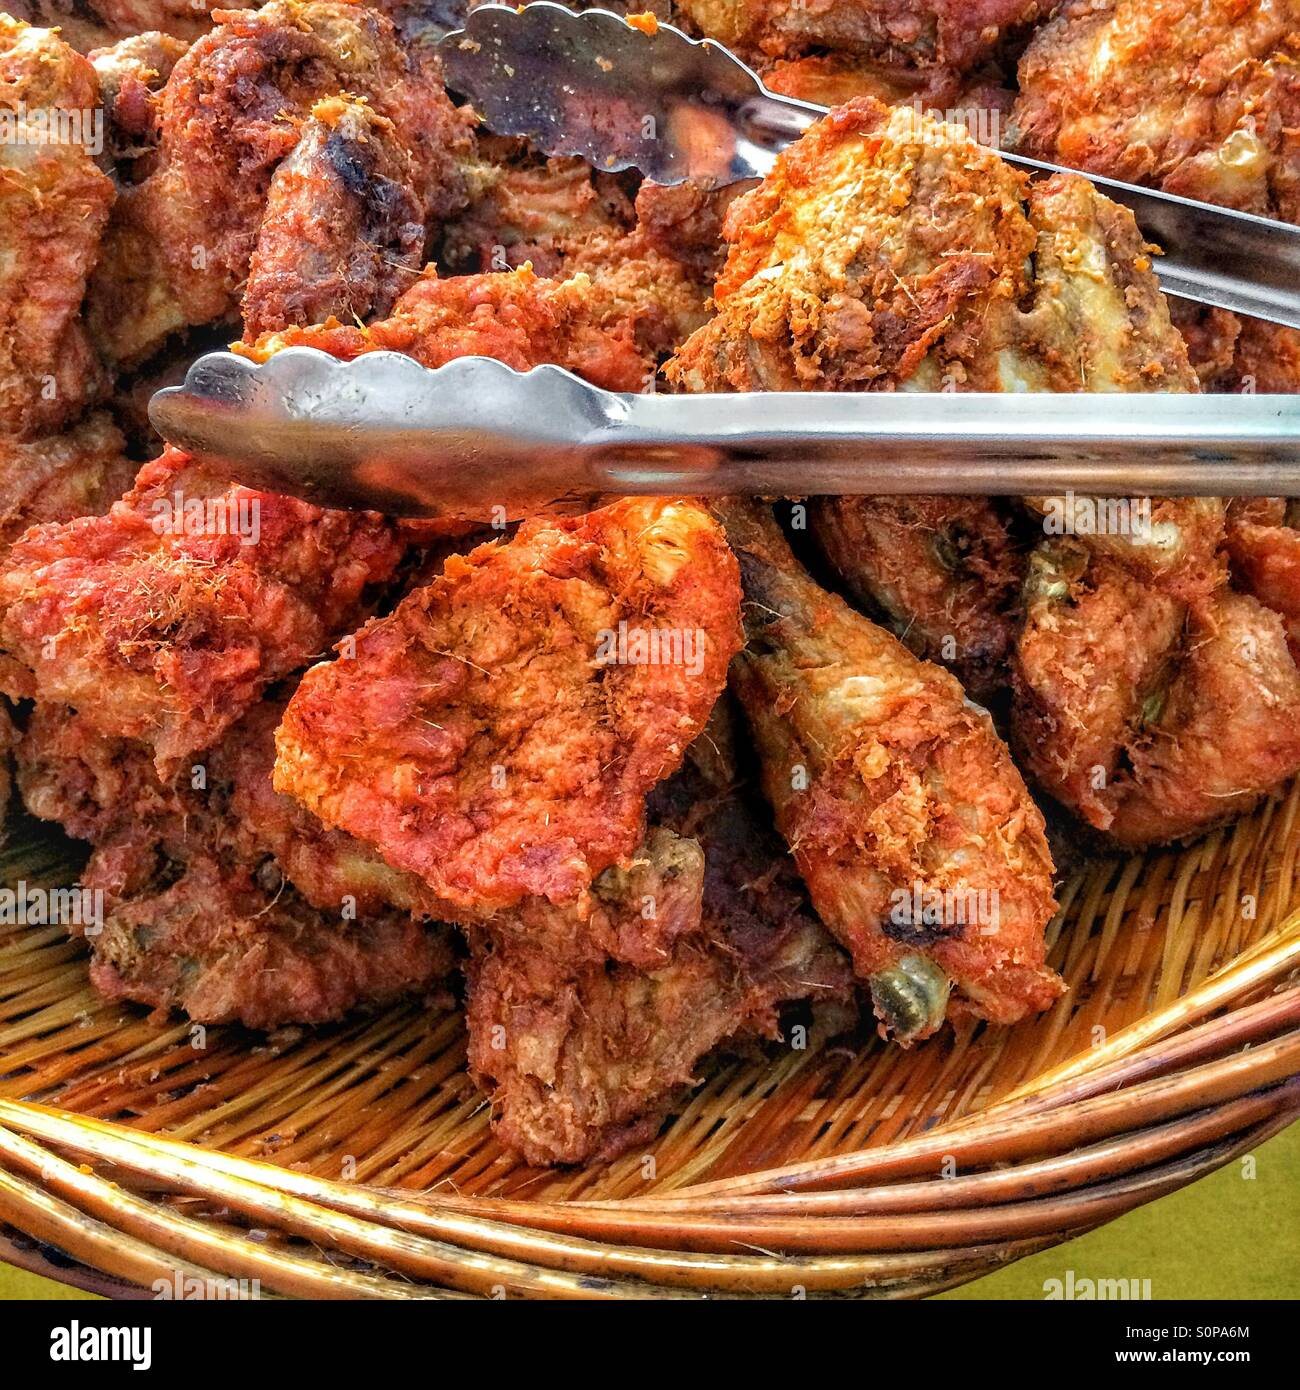 Fried Chicken Photo Stock